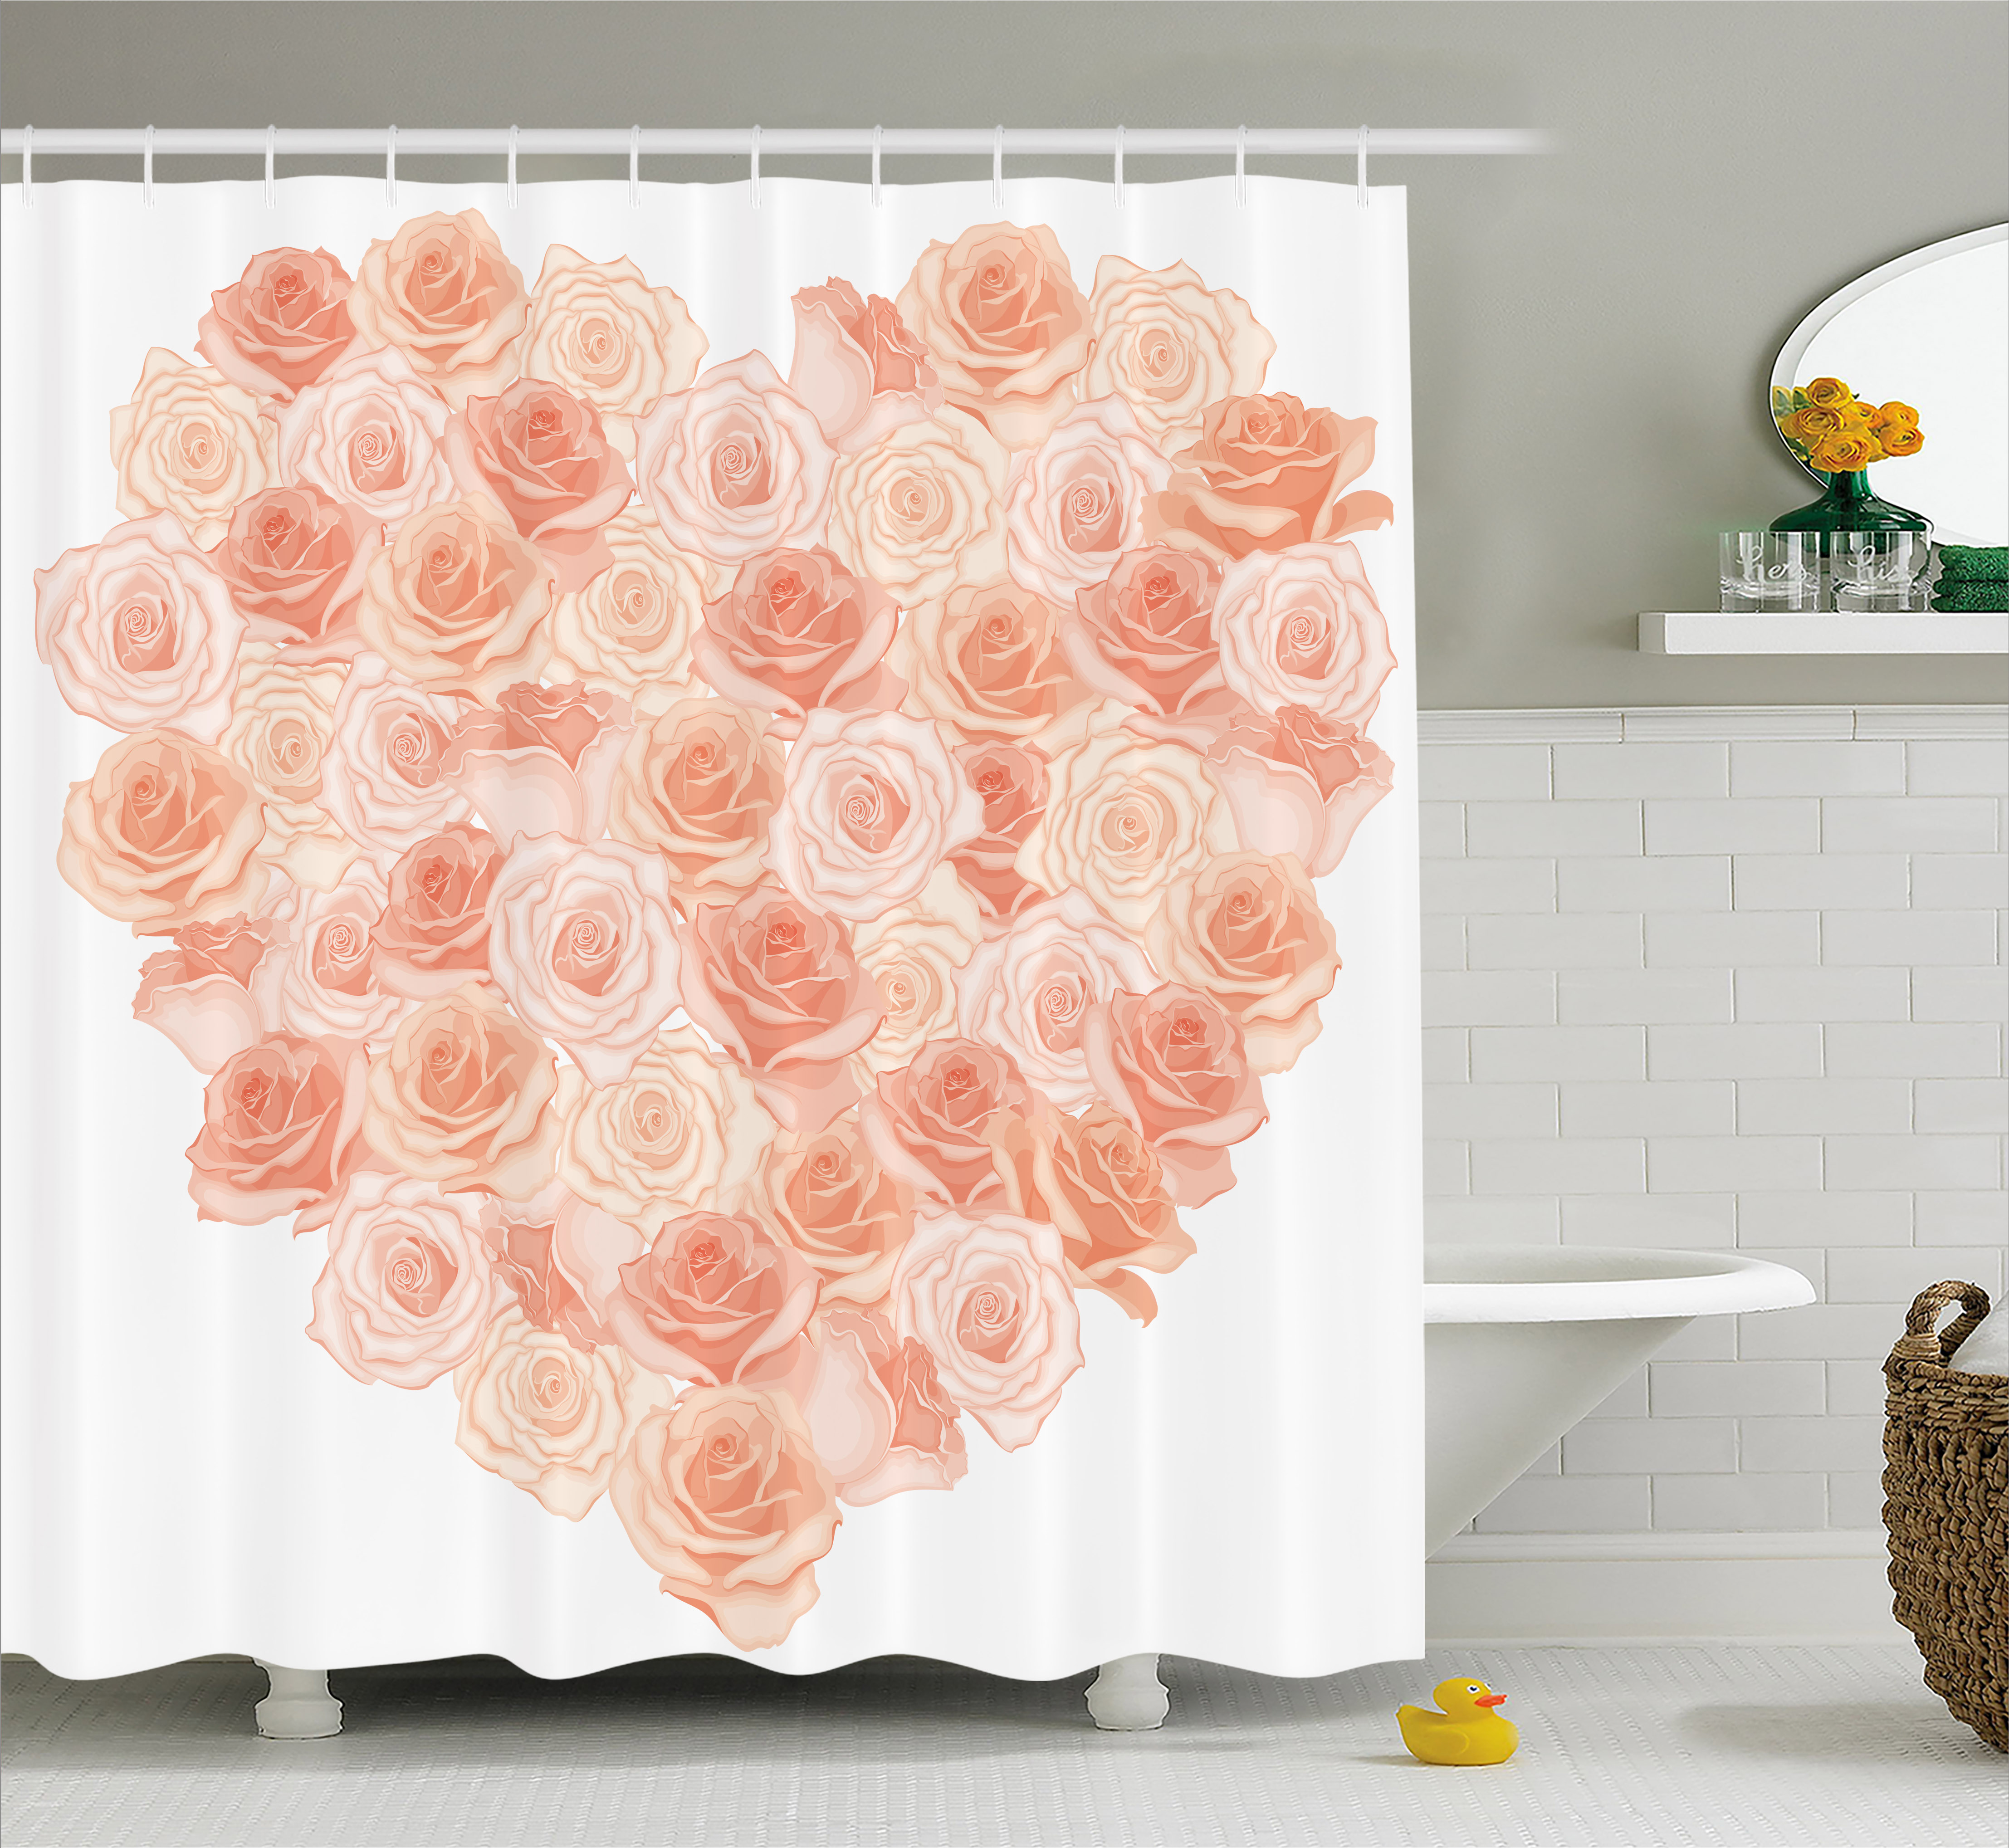 Peach Shower Curtain, Valentines Day Inspired Heart Shaped Blooming Roses  Bouquet With Romantic Design,